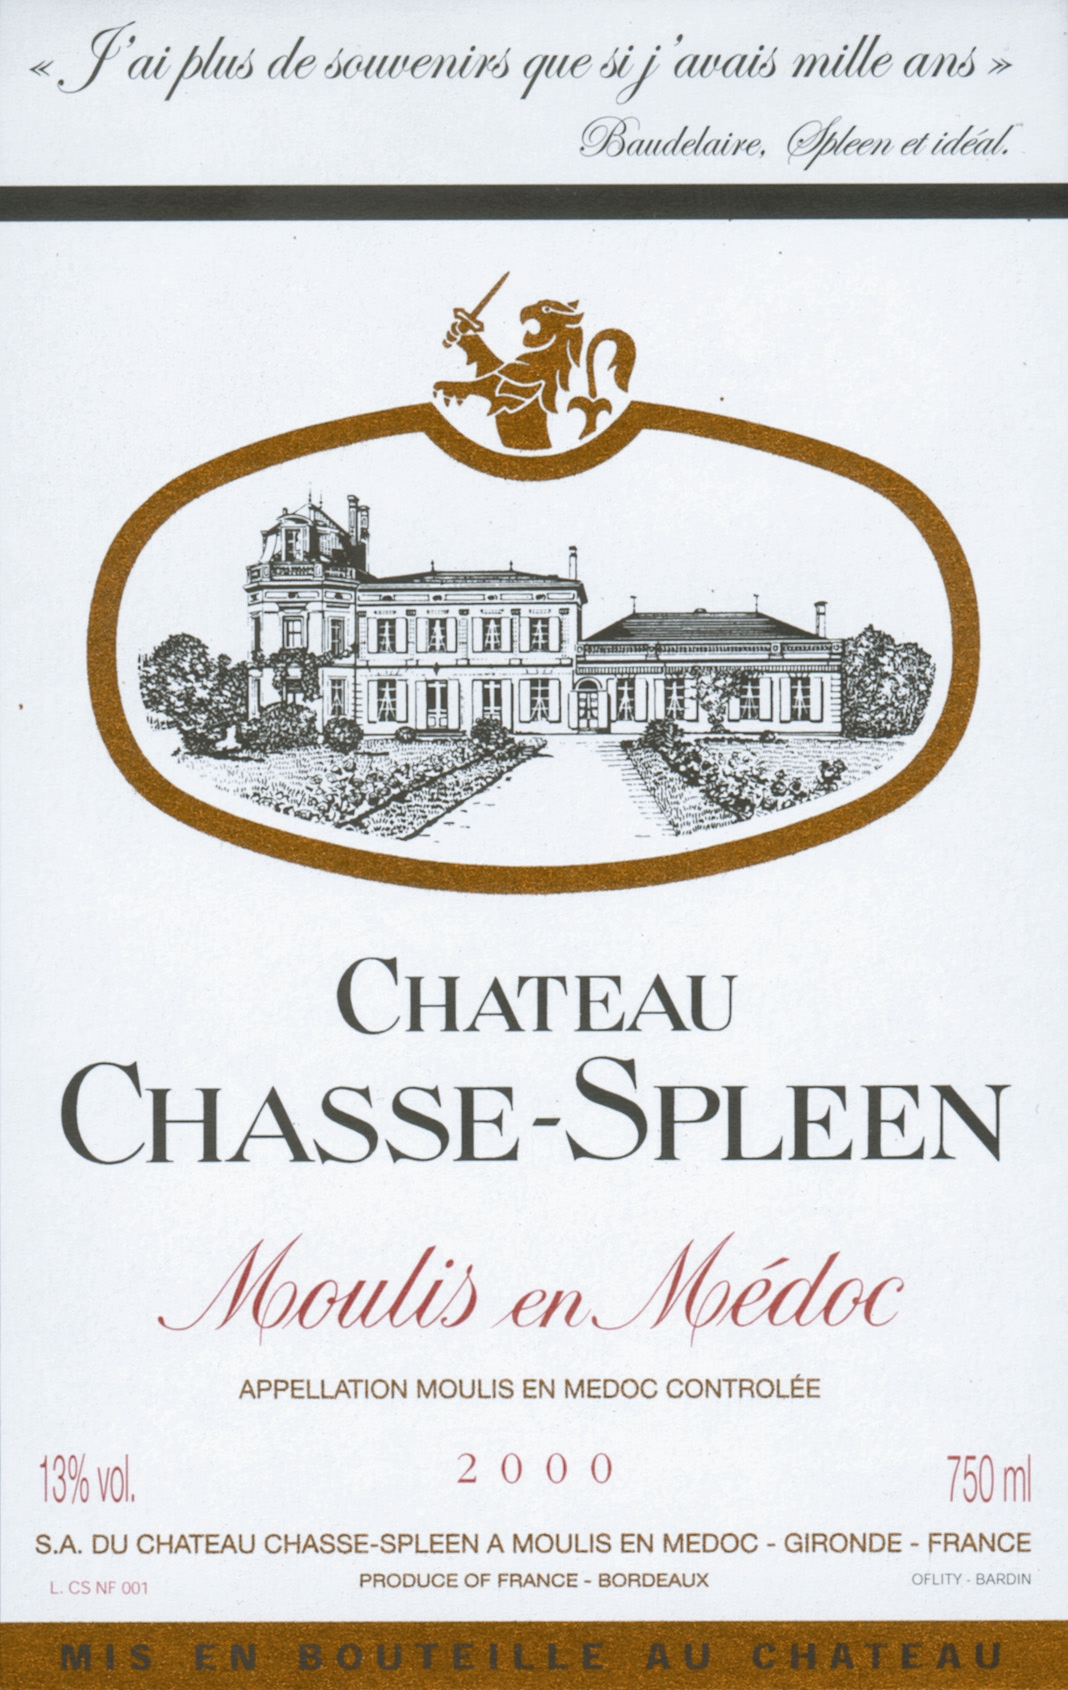 http://www.moulis.com/wordpress/wp-content/gallery/chateau-chasse-spleen/label-chasse-spleen-2000.jpg